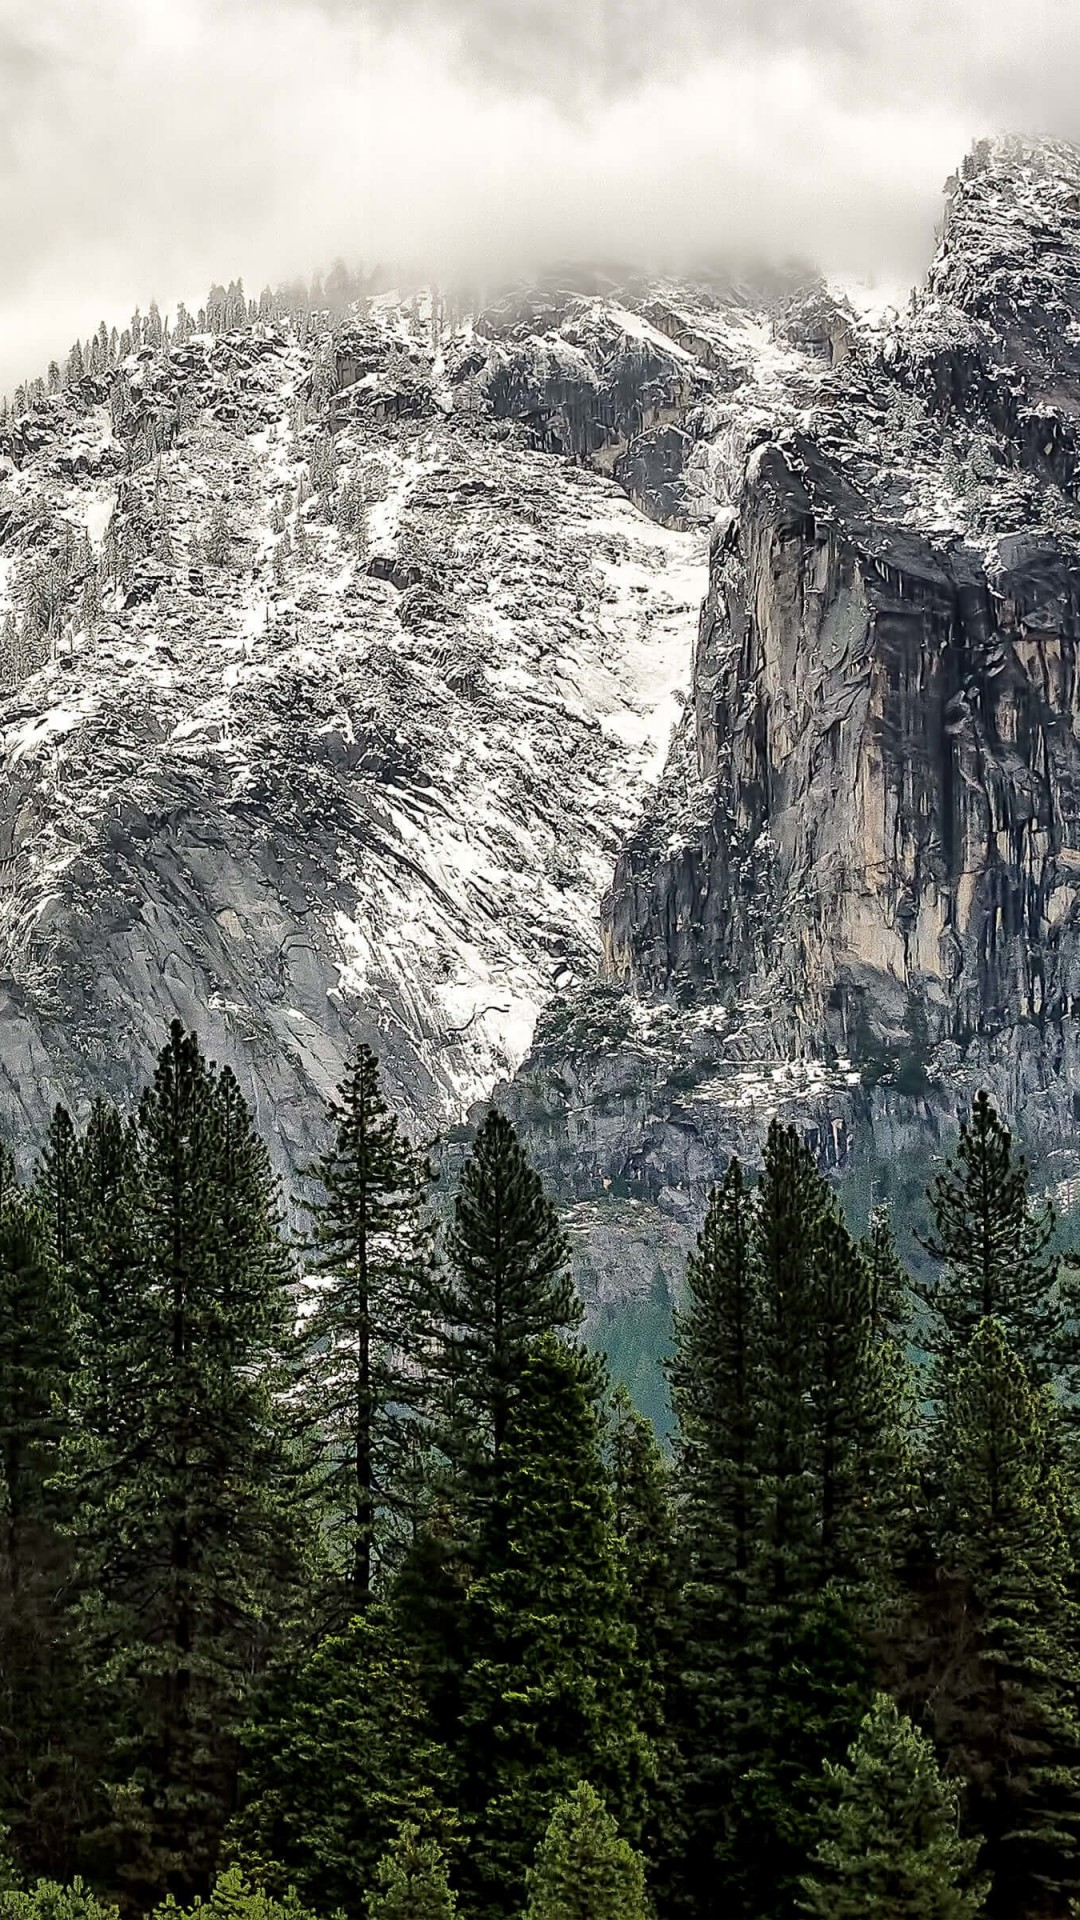 Winter Day at Yosemite National Park Wallpaper for SAMSUNG Galaxy S5